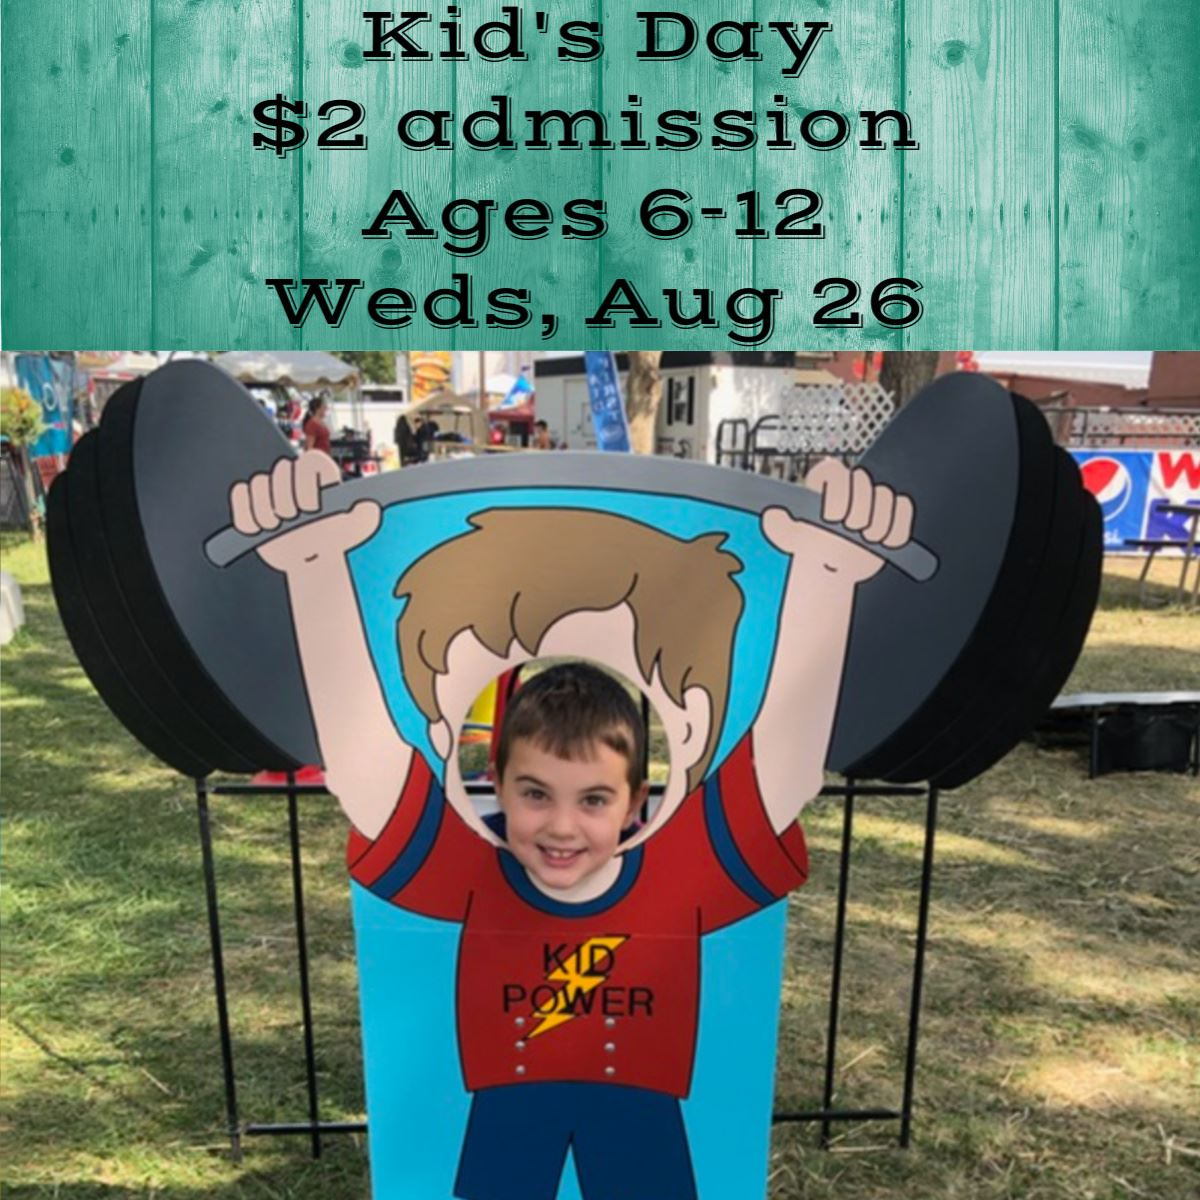 Kids day $2 admission Weds Aug 26